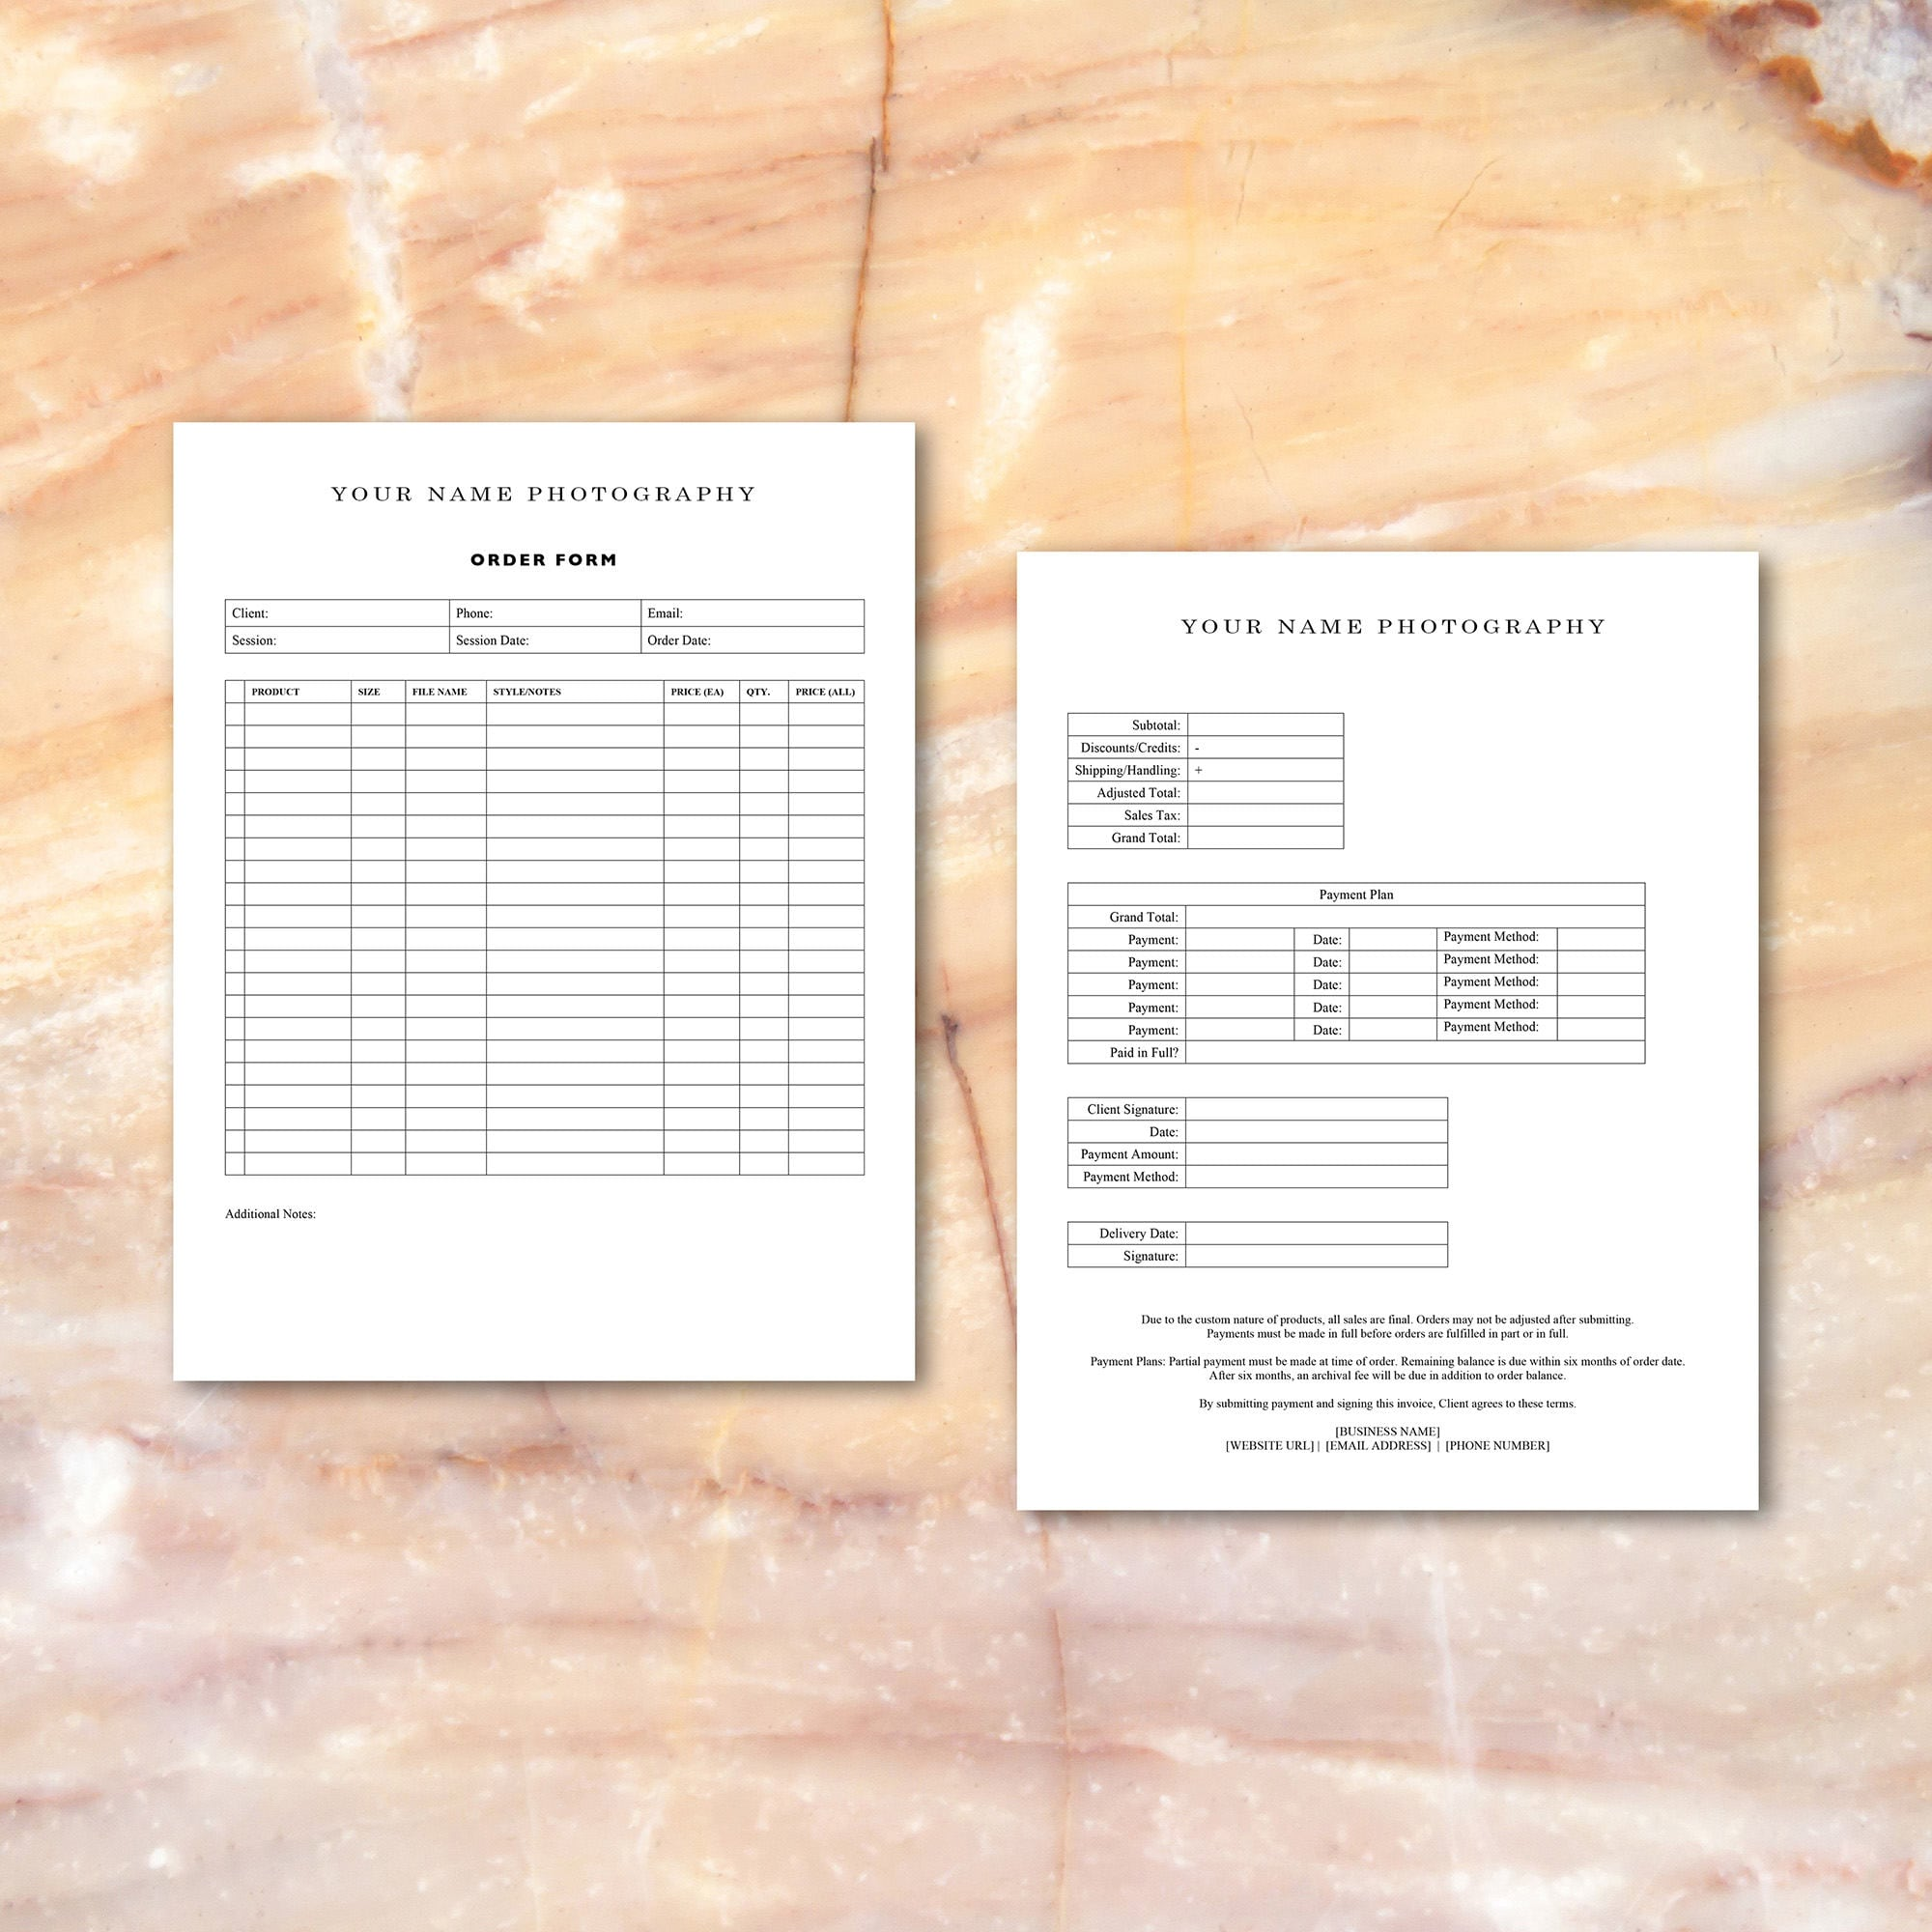 Photographer Order Form Template Ips Photographers Etsy